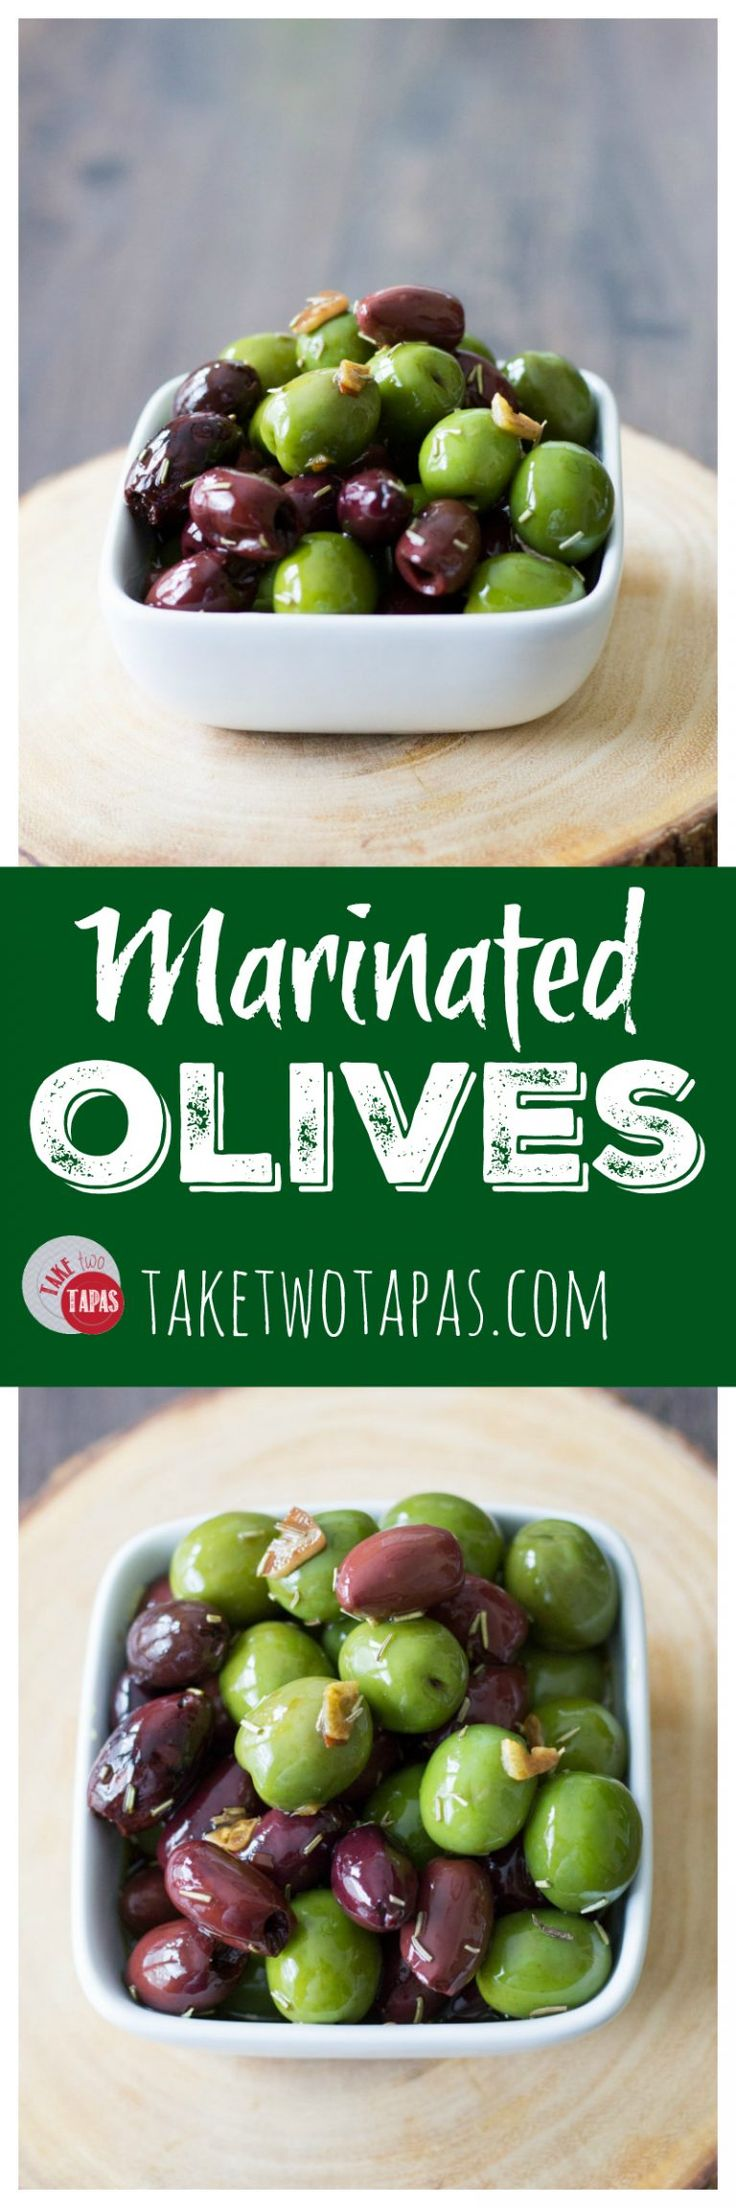 Olives are the perfect snack for day or night. Full of healthy fats and Vitamin E these olives marinated in olive oil and balsamic vinegar are the perfect choice to satisfy that salty snack craving! Marinated Olives Recipe | Take Two Tapas